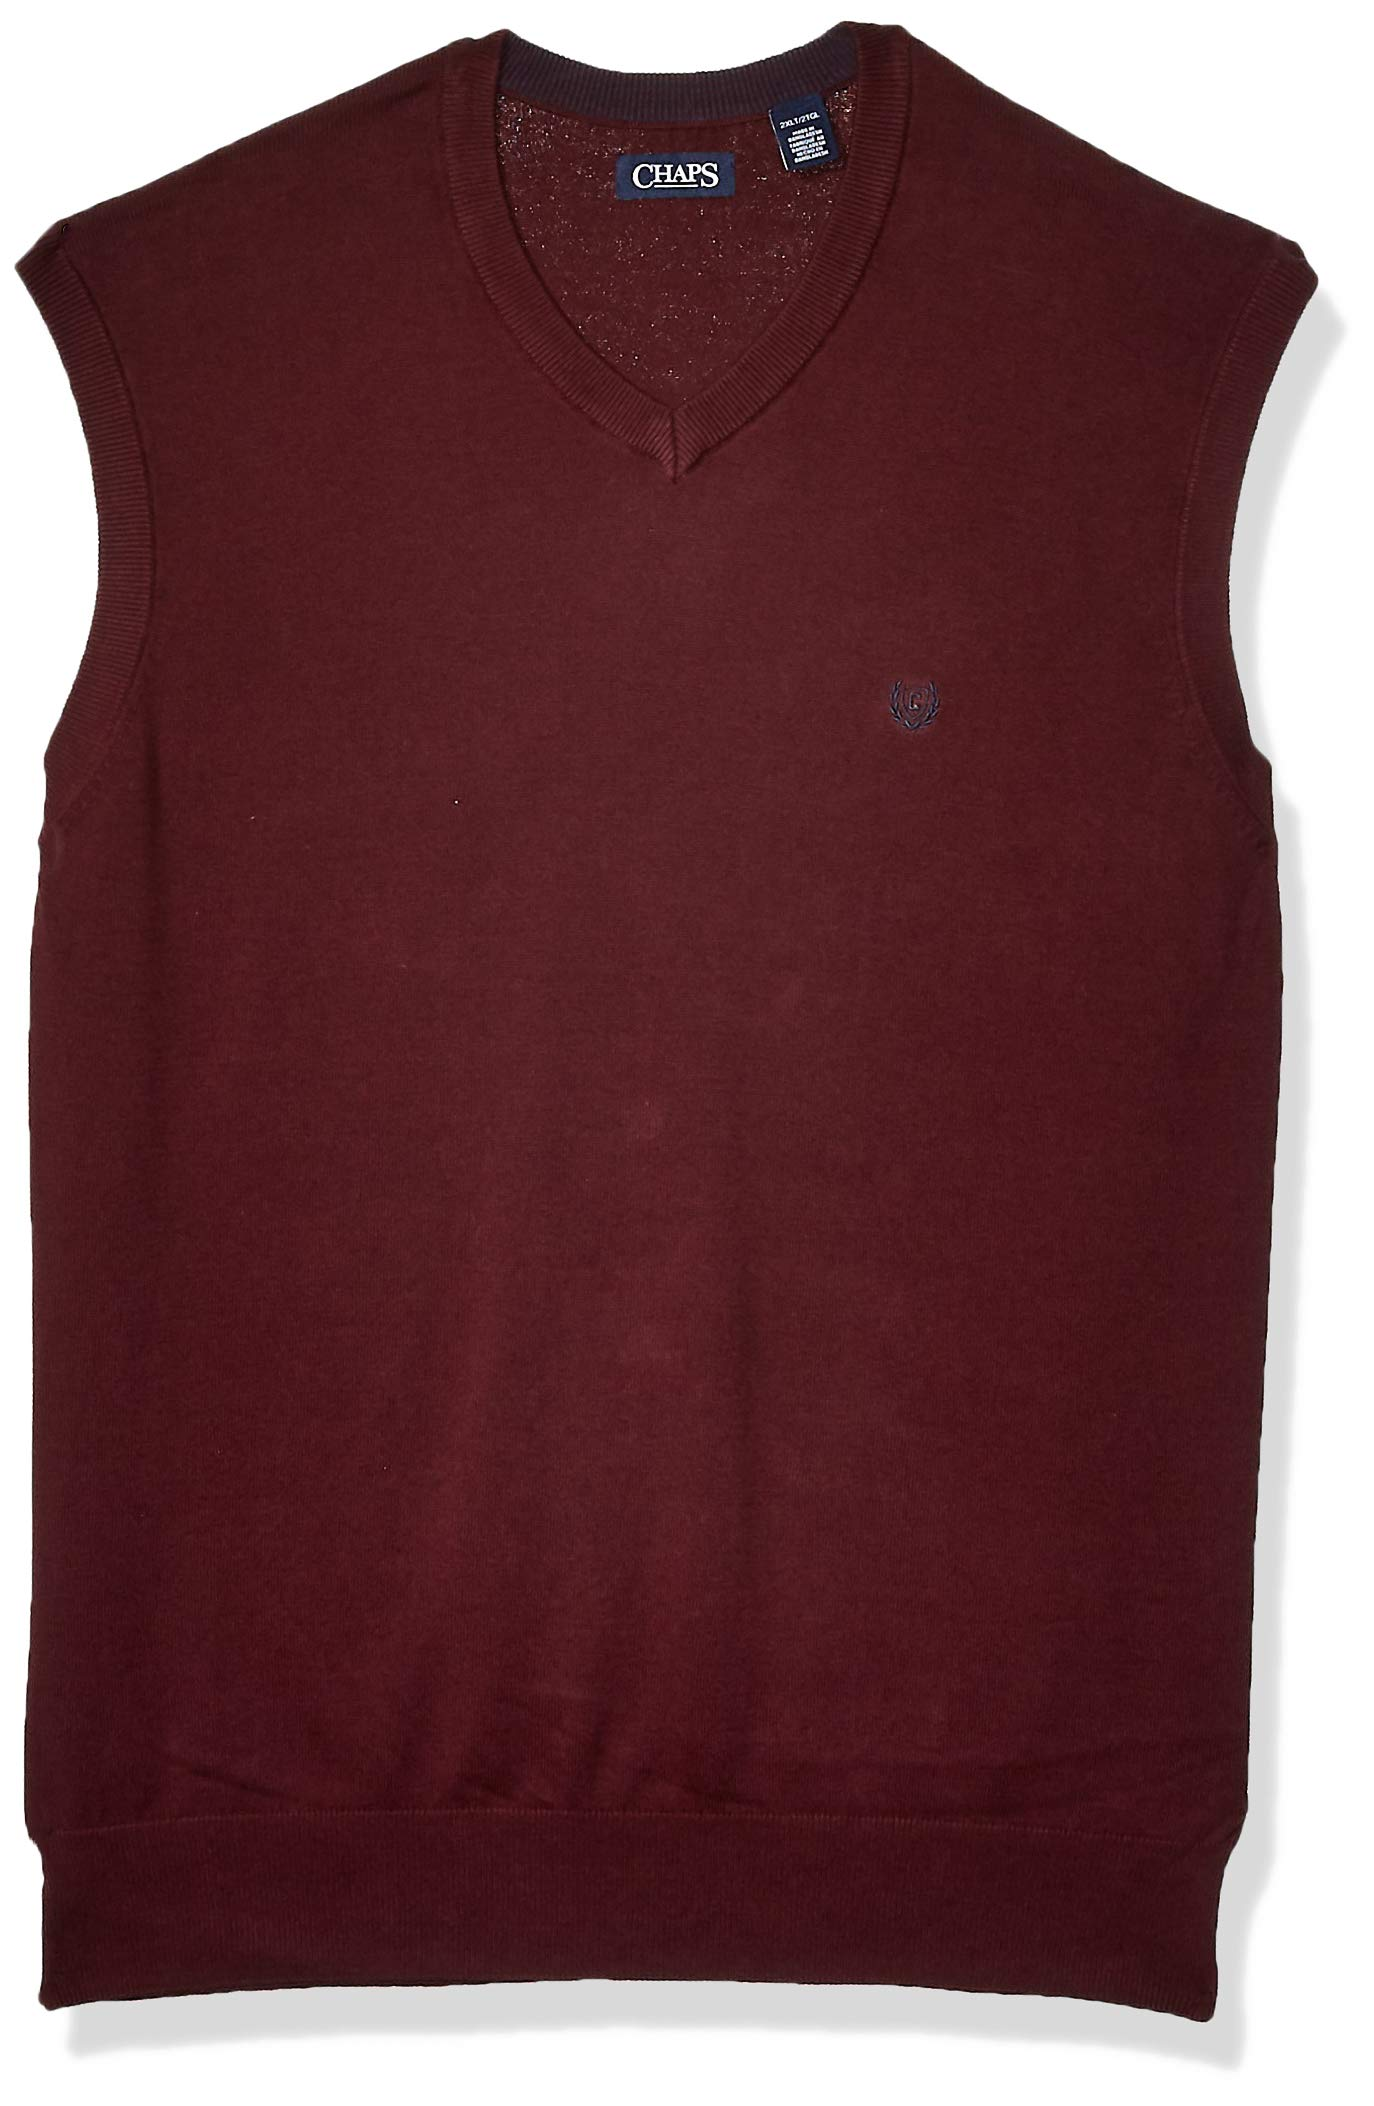 Chaps Men's Big and Tall Cotton V-Neck Sweater Vest, Rich Ruby, 3XB by Chaps